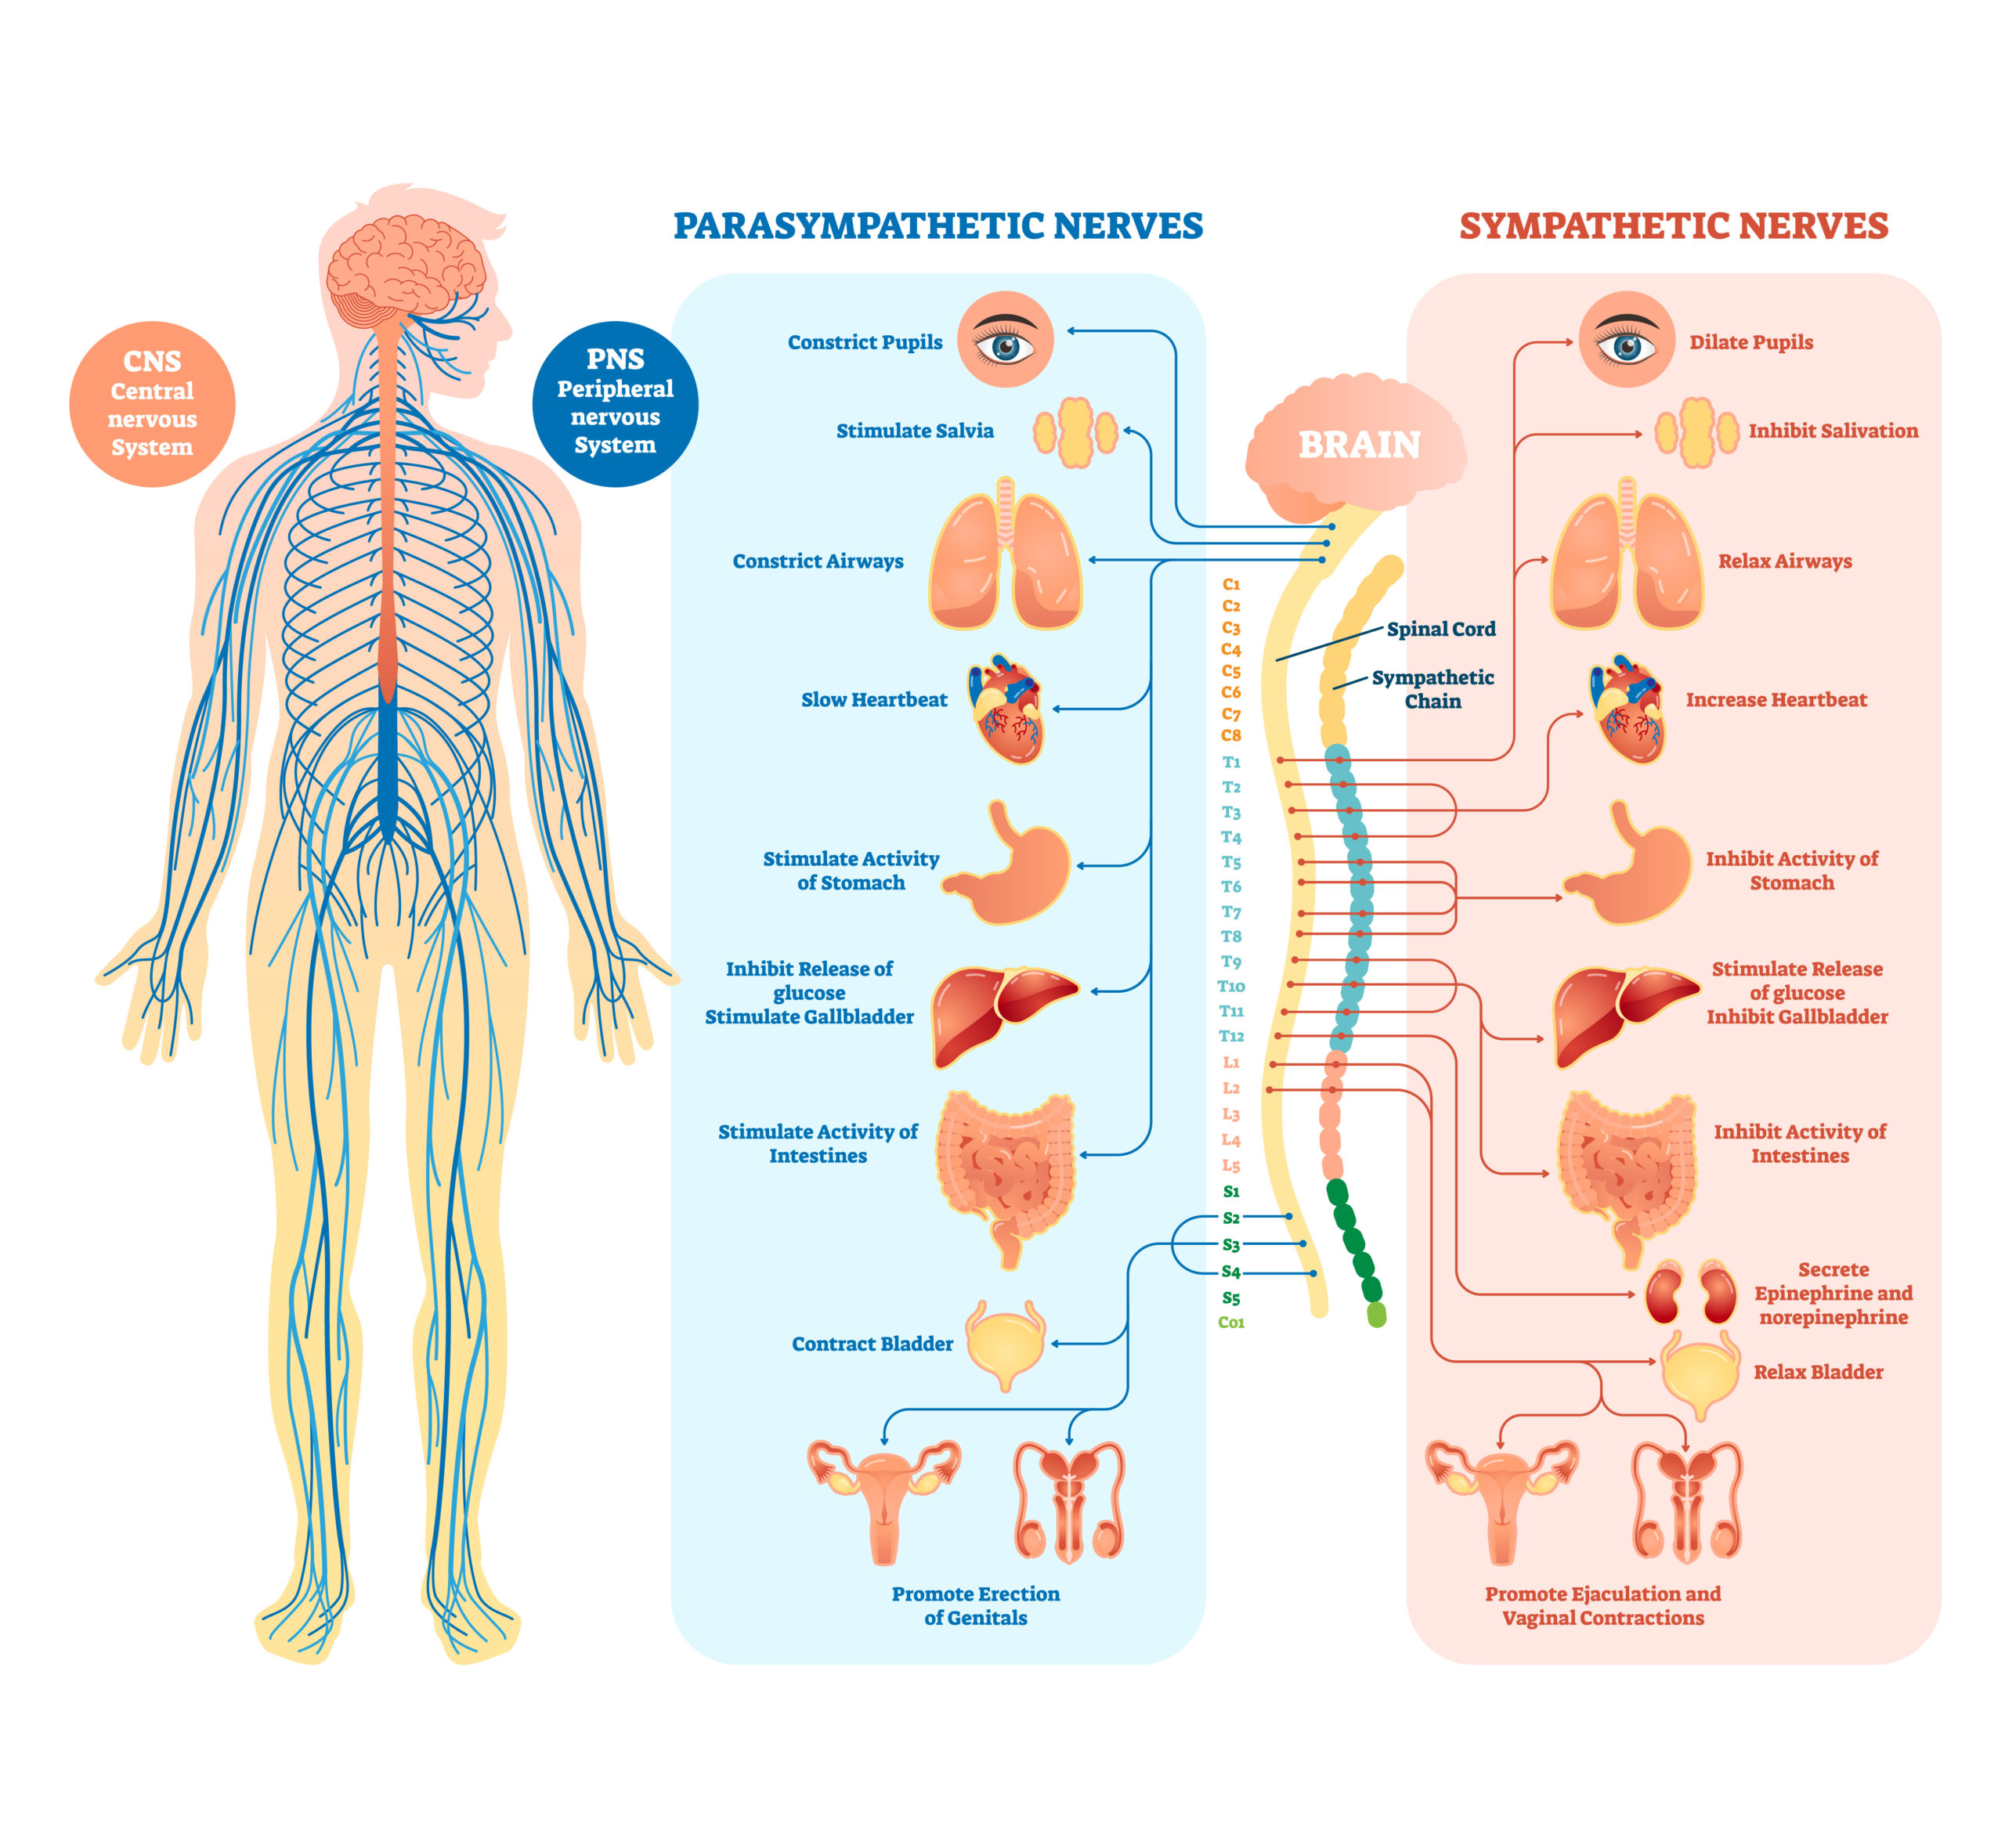 Medical diagram of the human nervous system with parasympathetic and sympathetic nerves.